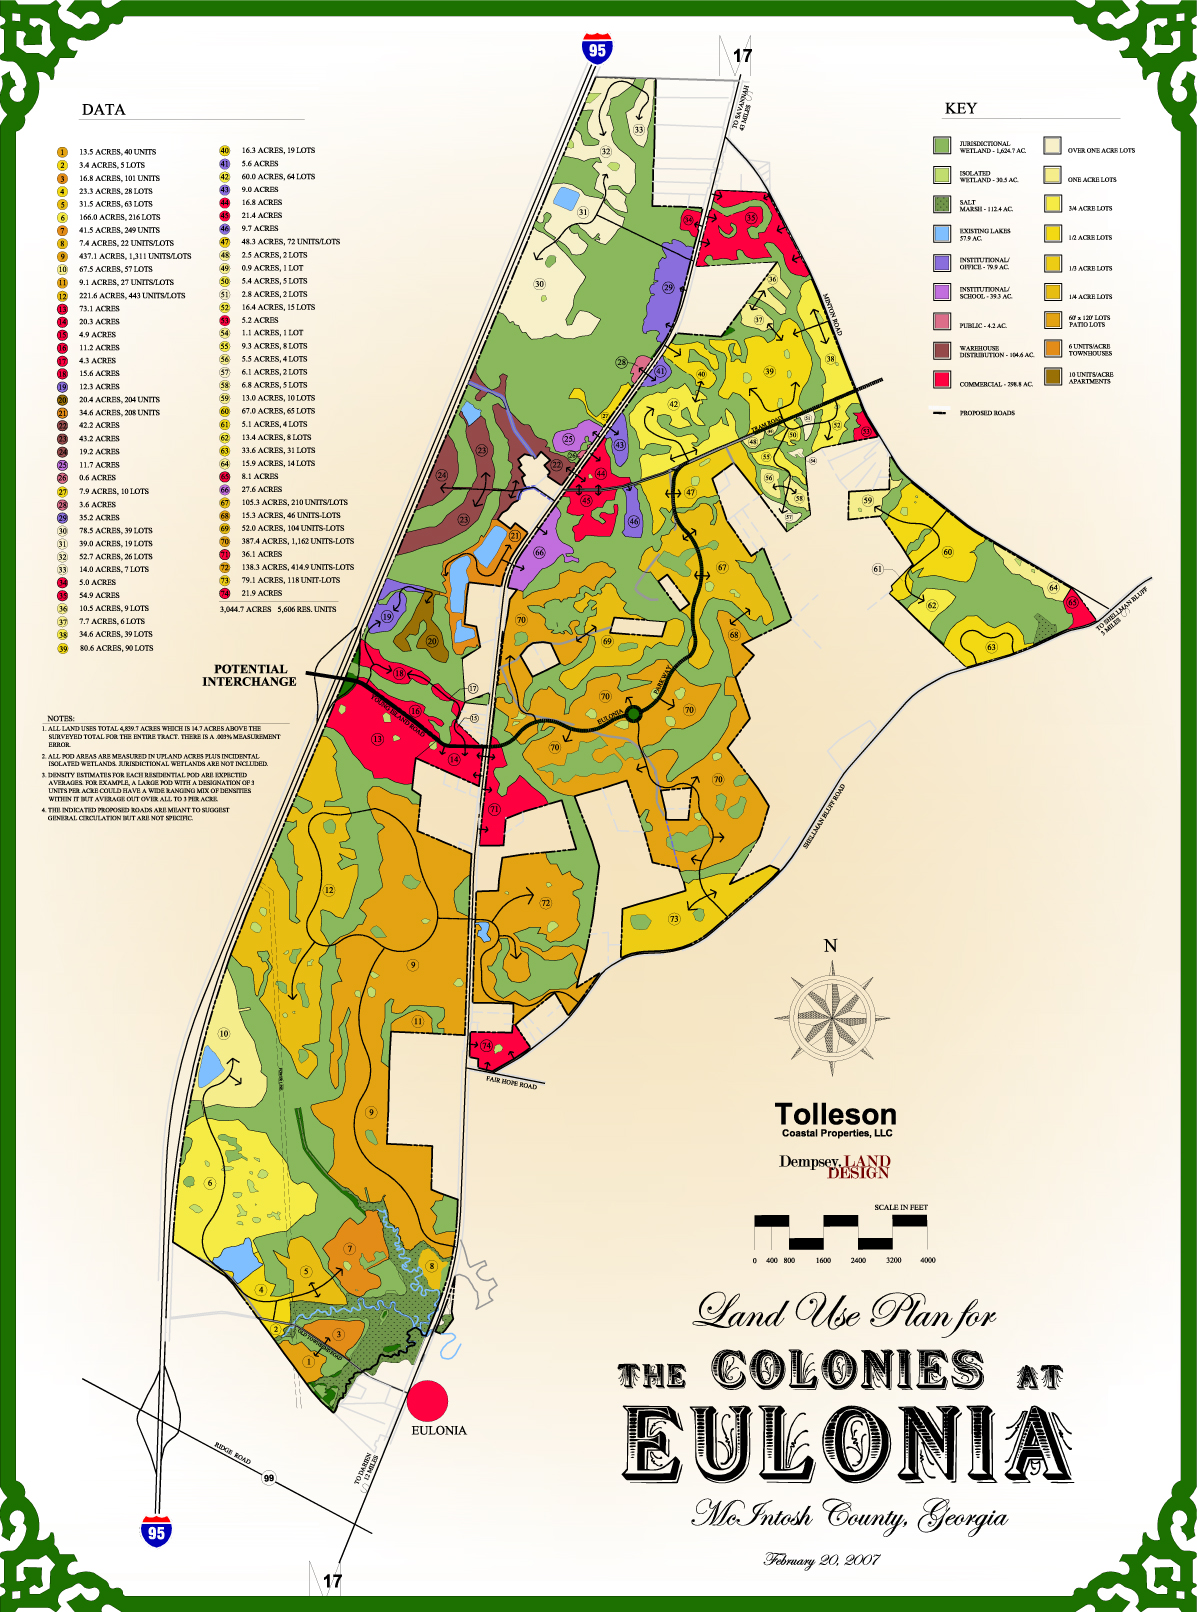 The Colonies at Eulonia Land Use Planning